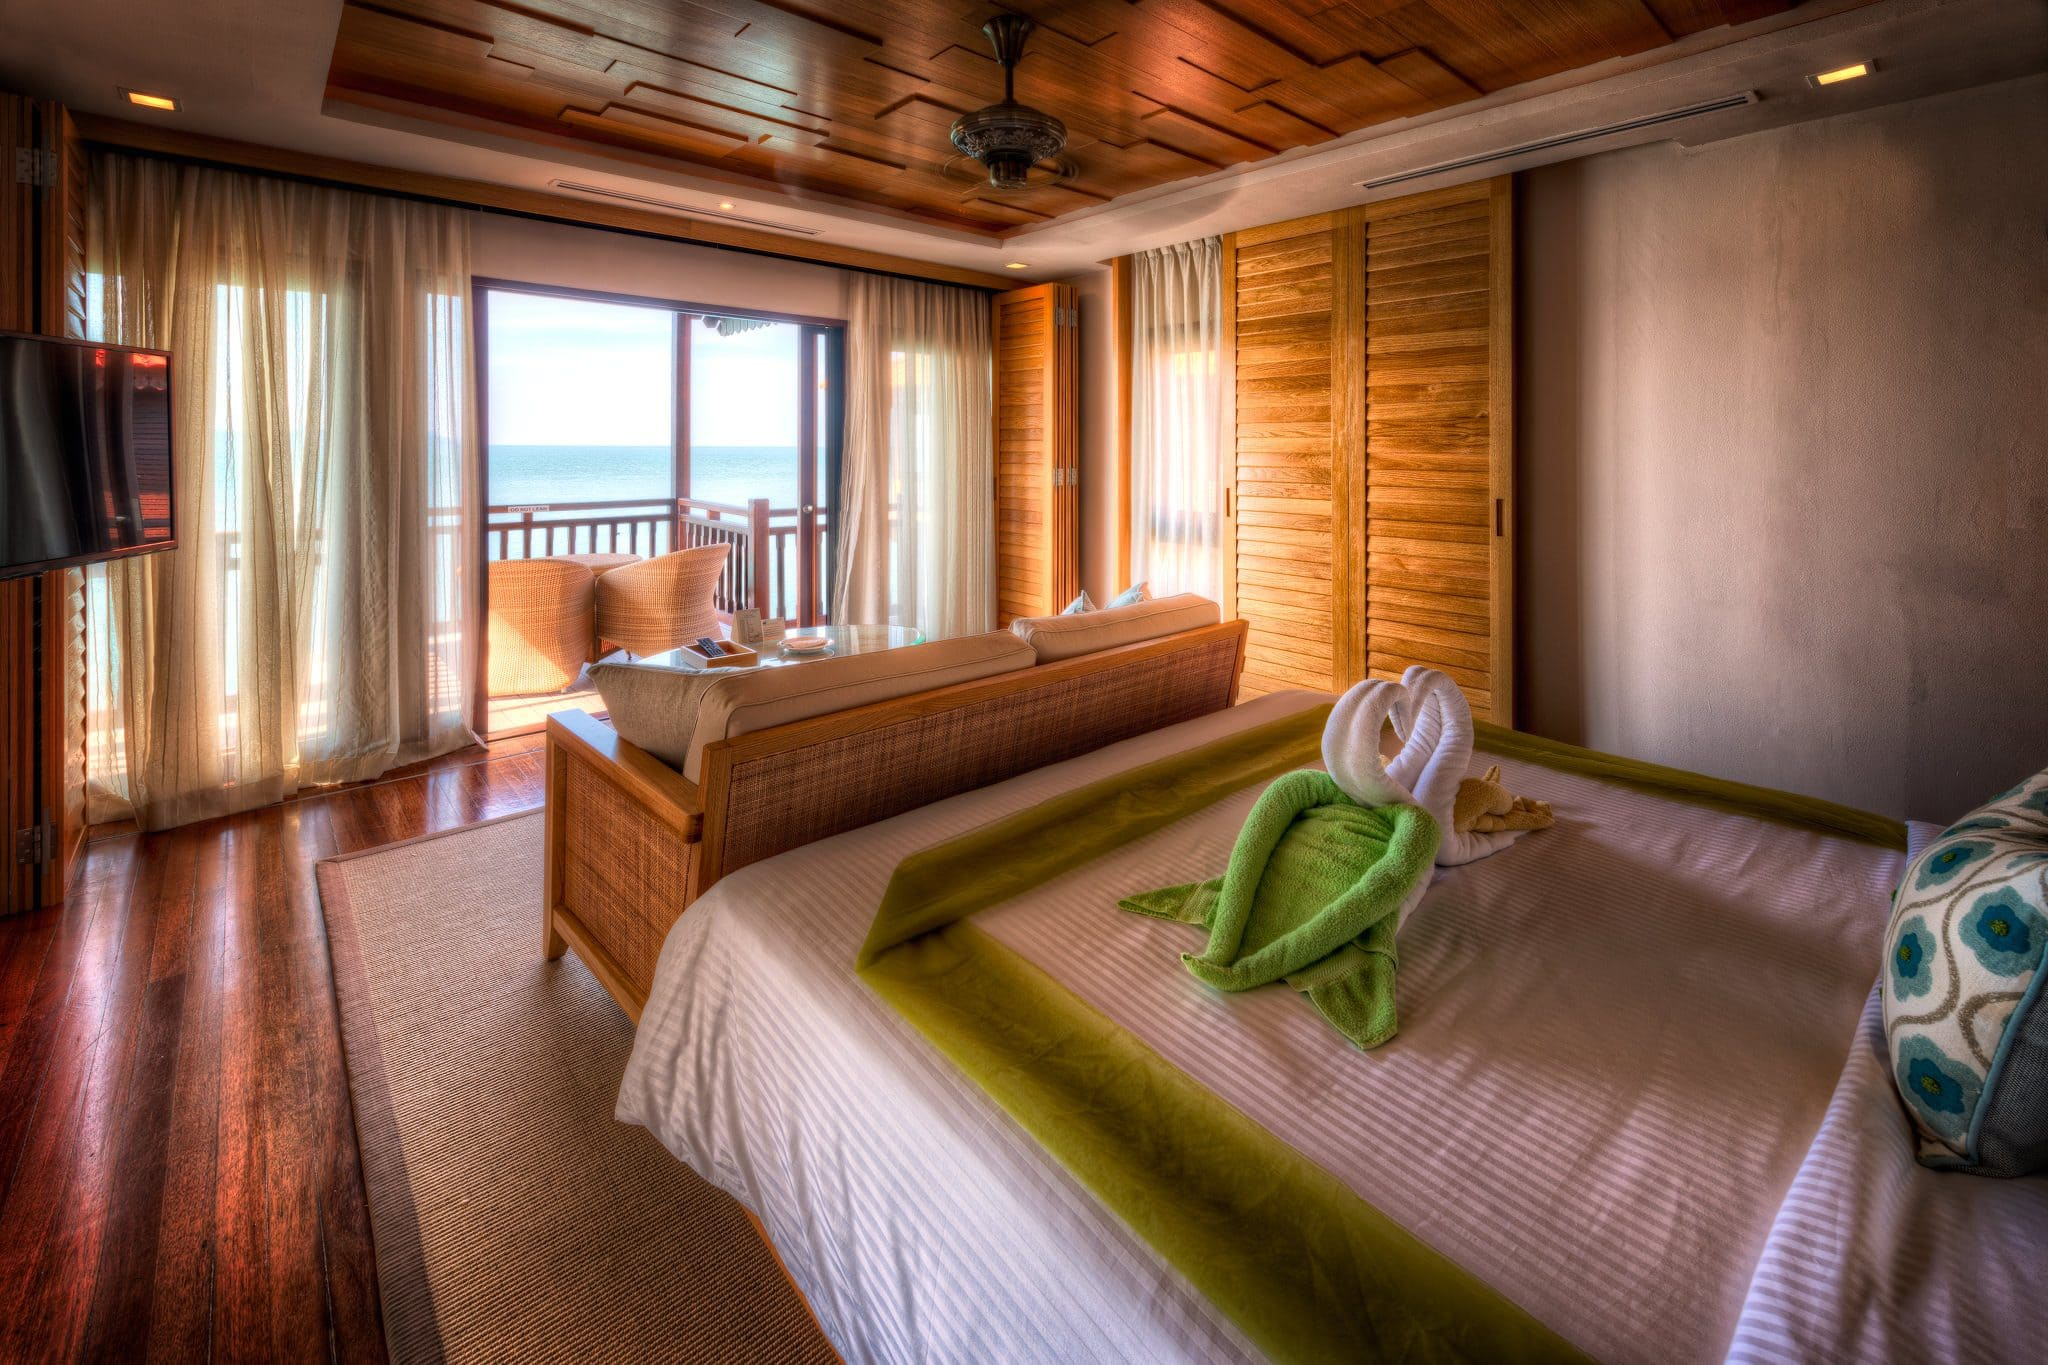 Berjaya Resort on Langkawi, Chalet on water – bedroom view.